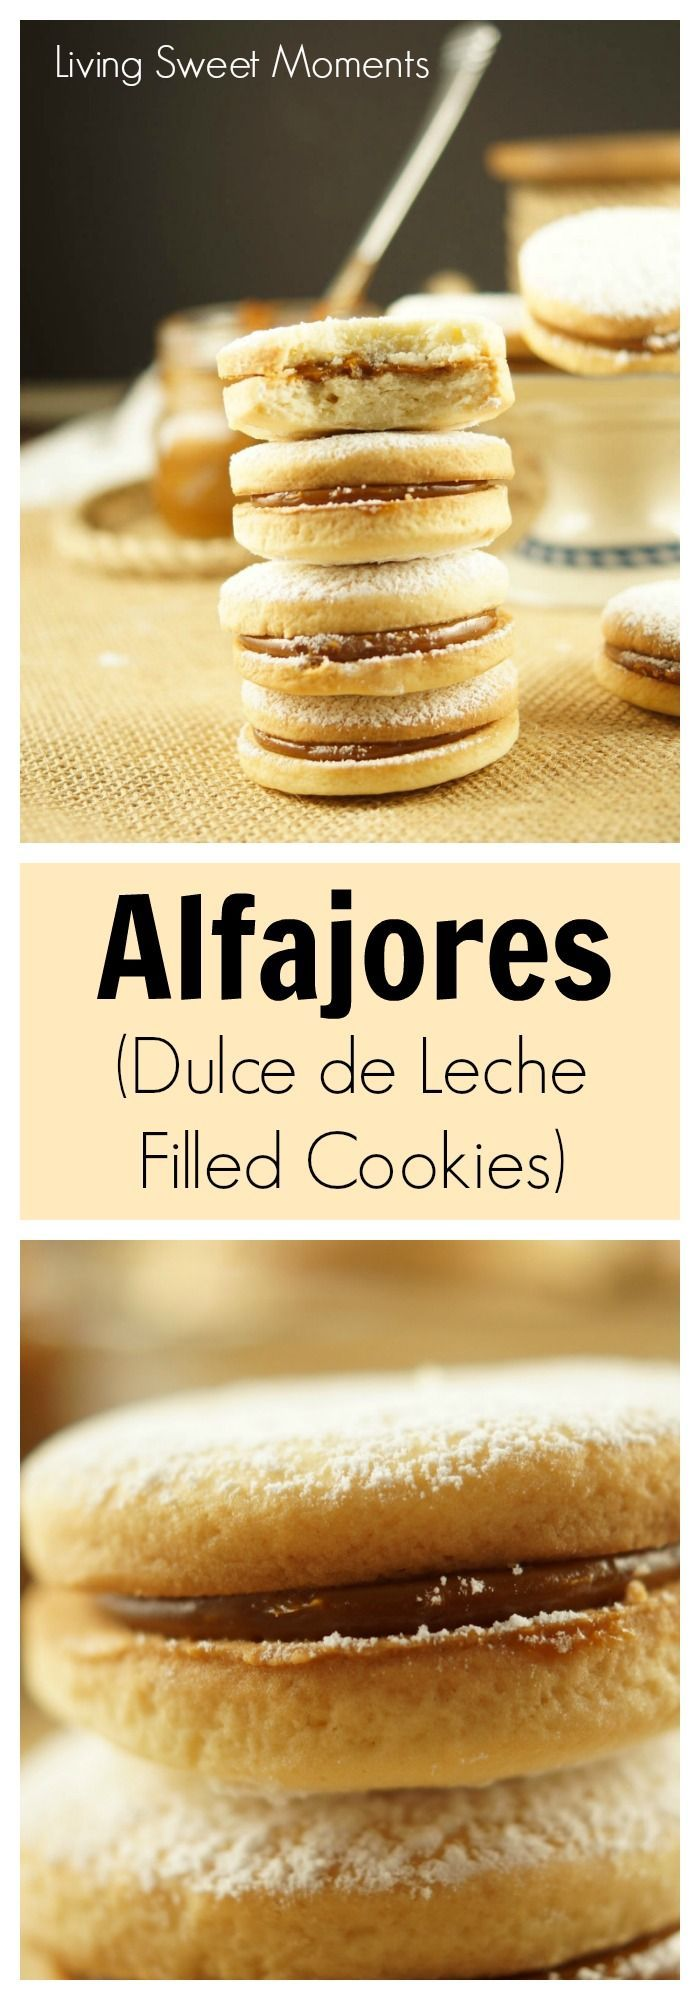 Alfajores Recipe - they are delicate shortbread cookies filled with dulce de leche. These cookies use cornstarch as a main ingredient. Great with coffee! More on liivngsweetmoment...